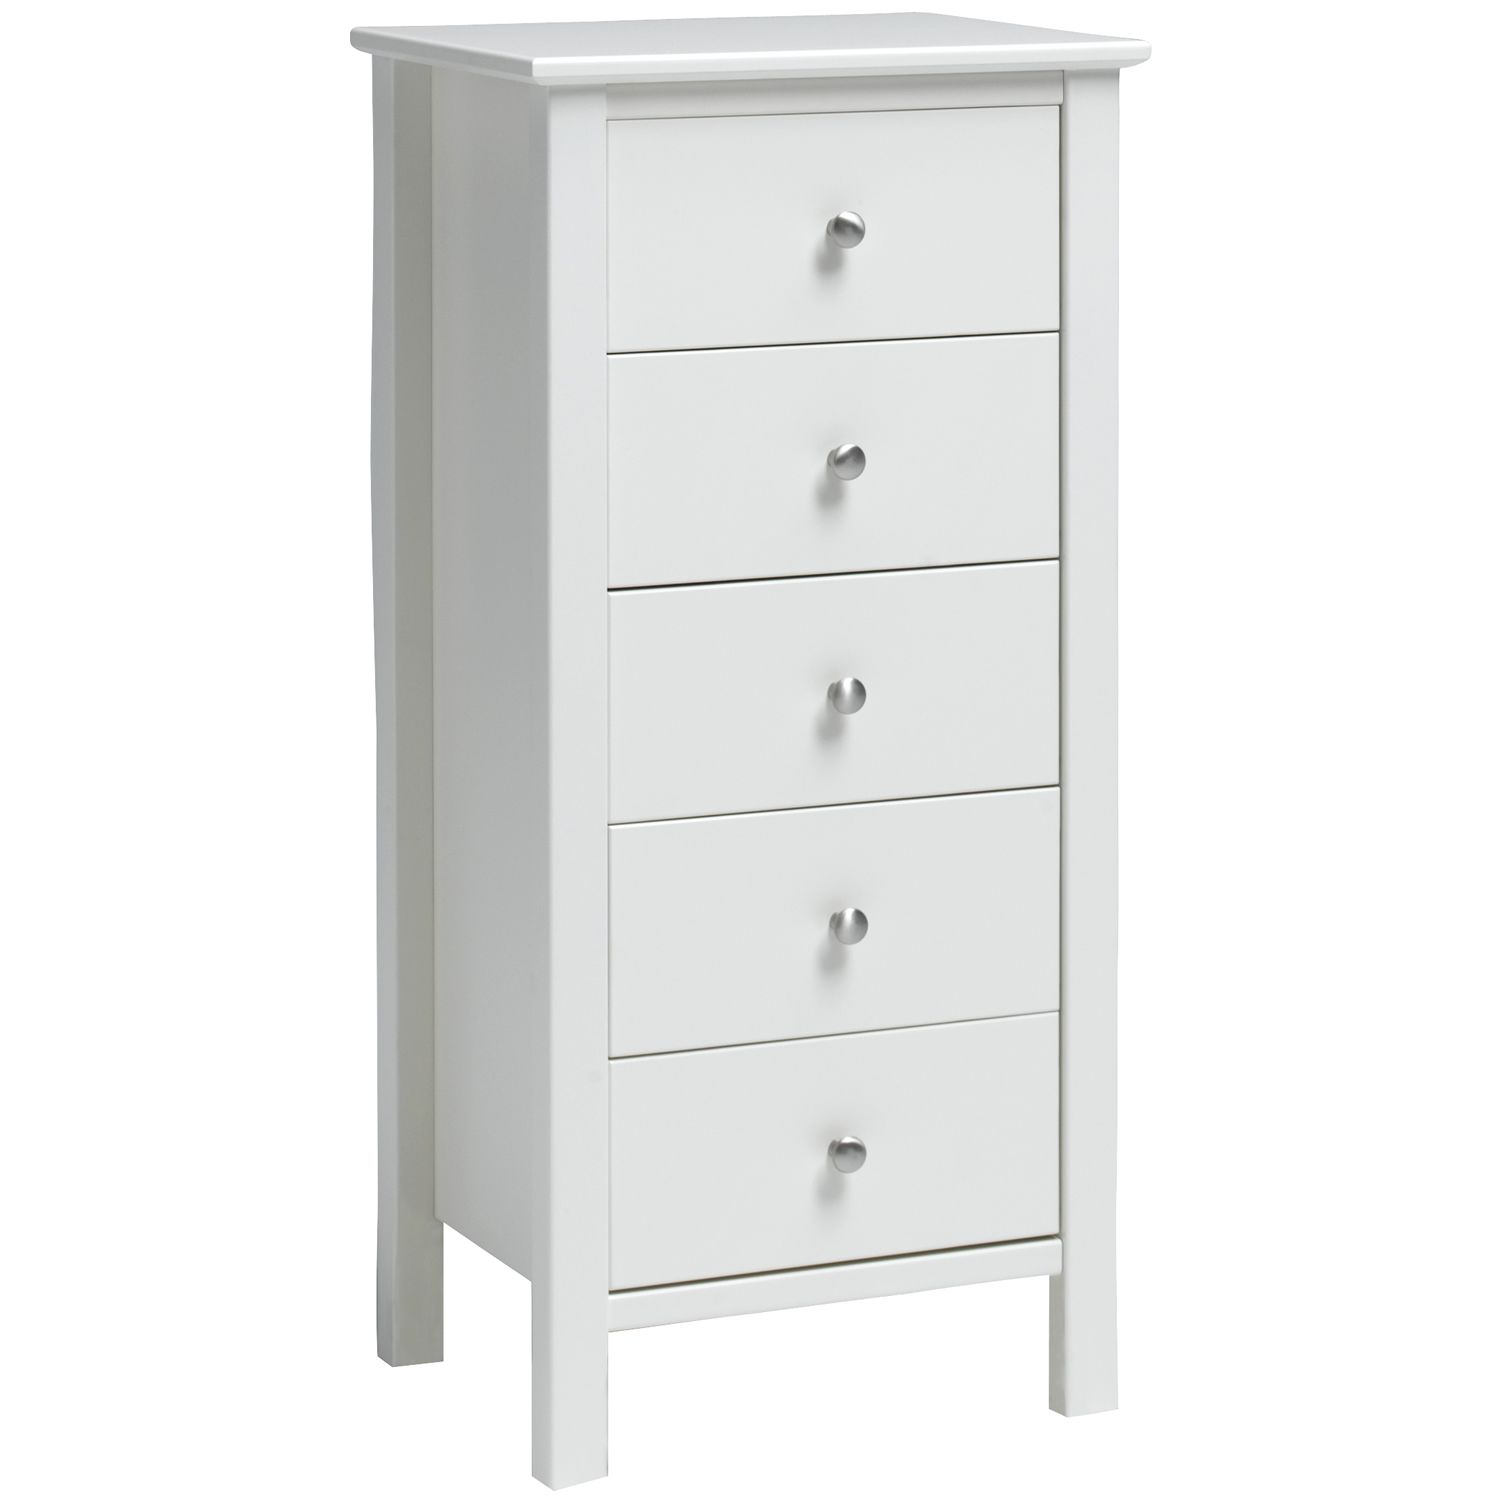 on australia drawers ideas used dresser slim furniture drawer best top tall of narrow chest